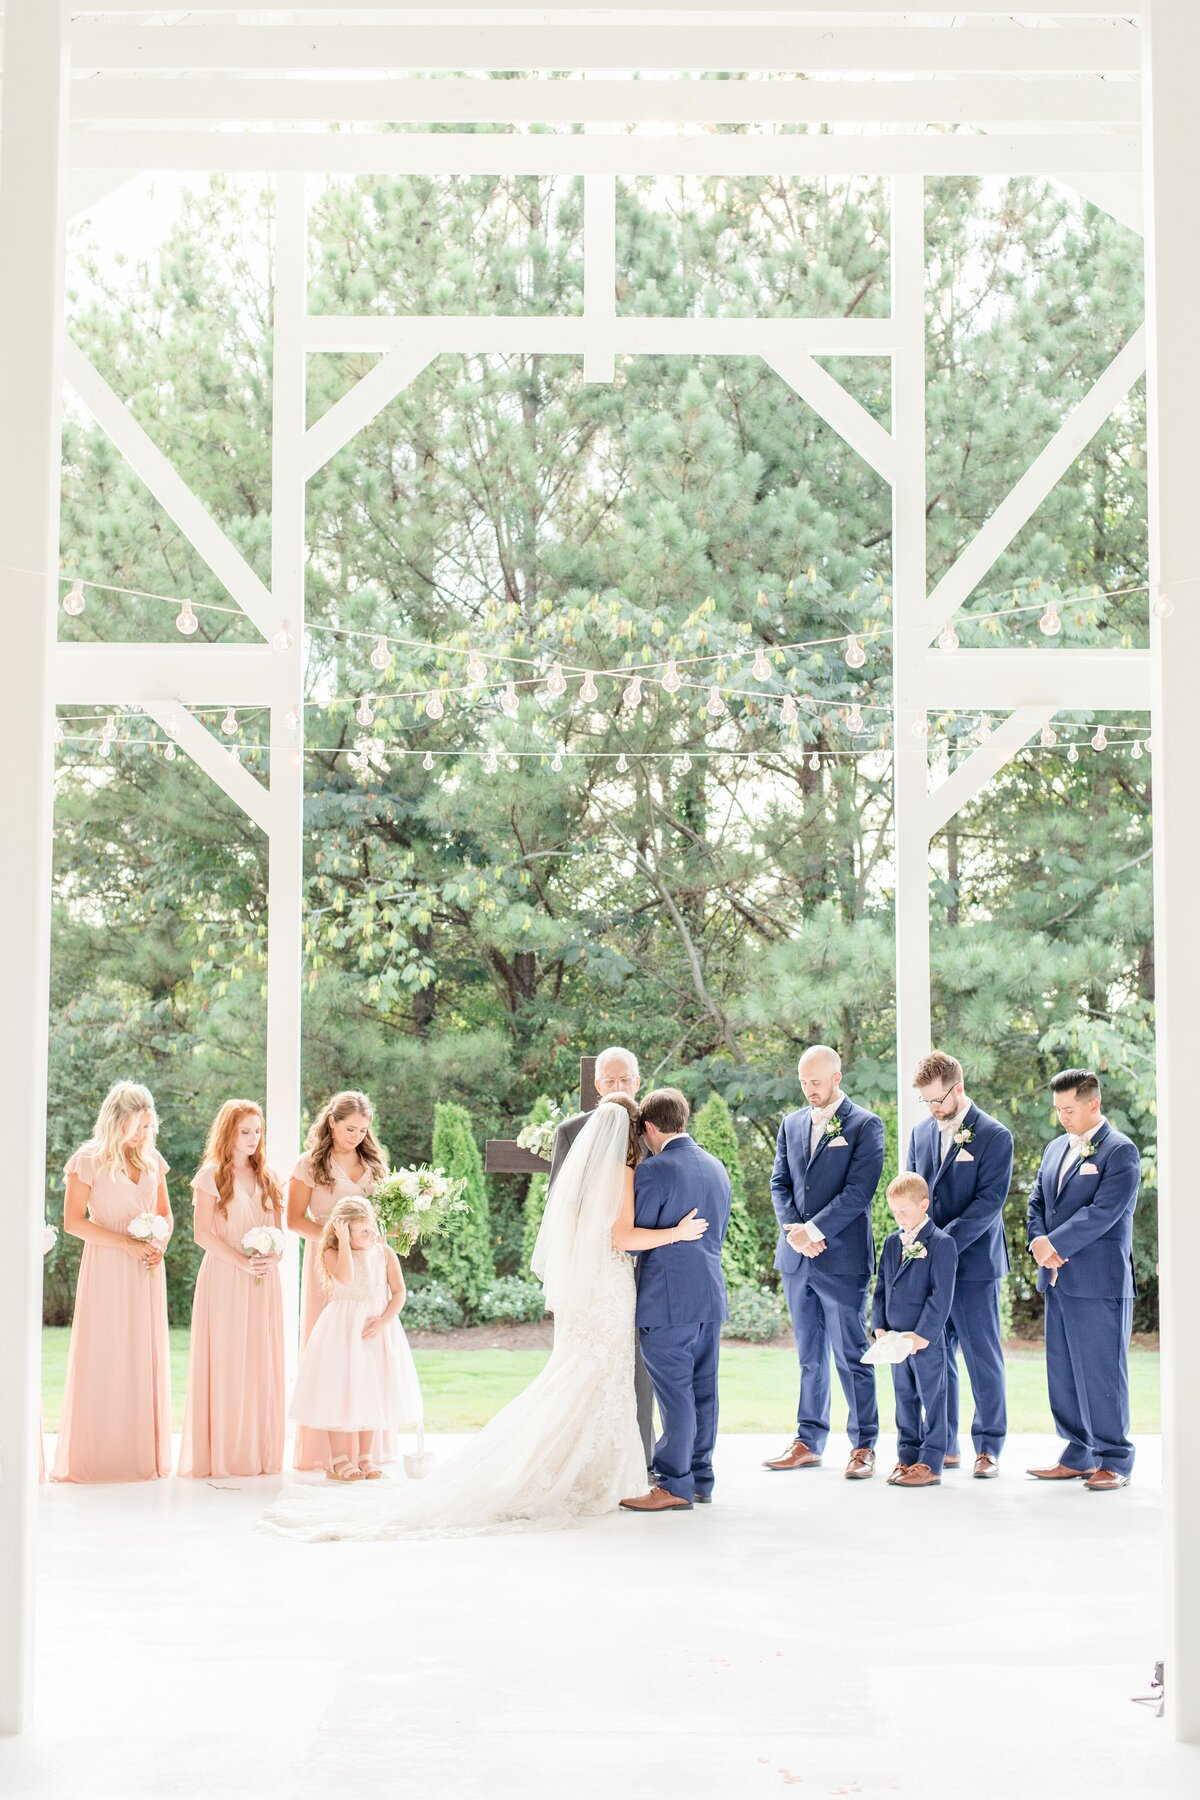 Wedding Gallery - A&J Birmingham, Alabama Wedding & Engagement Photographers - Katie & Alec Photography 31